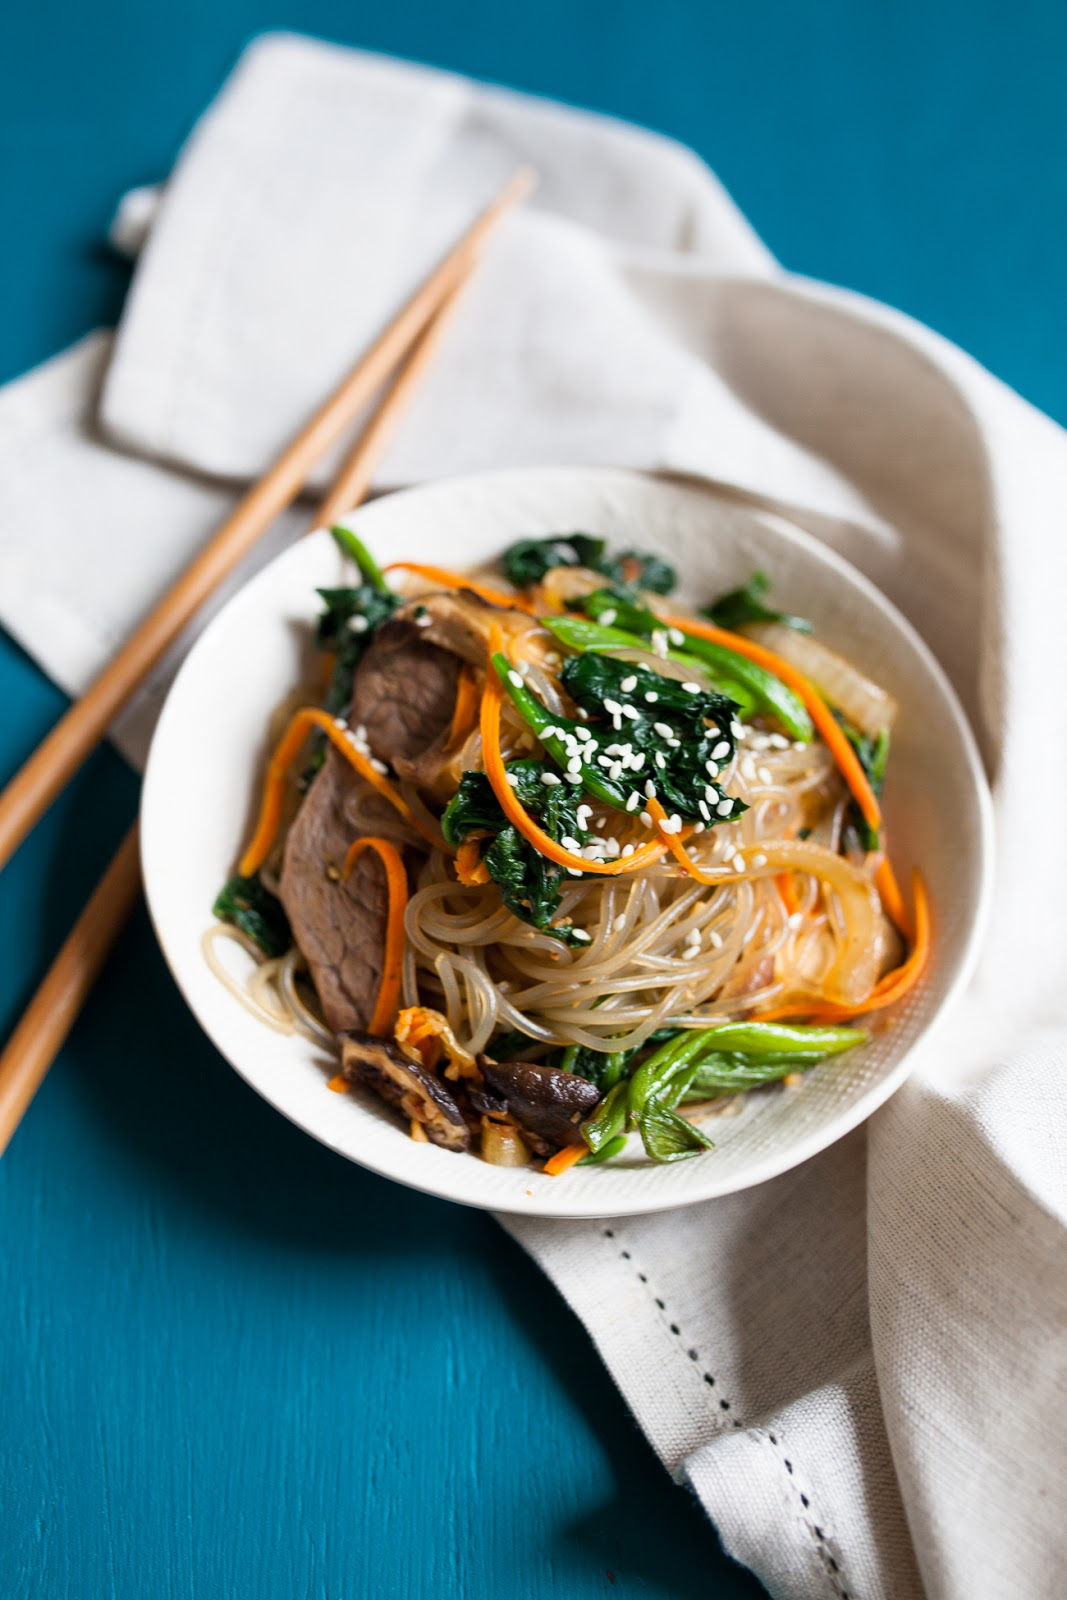 Japchae - Korean Stir-Fried Sweet Potato Noodles / blog.jchongstudio.com